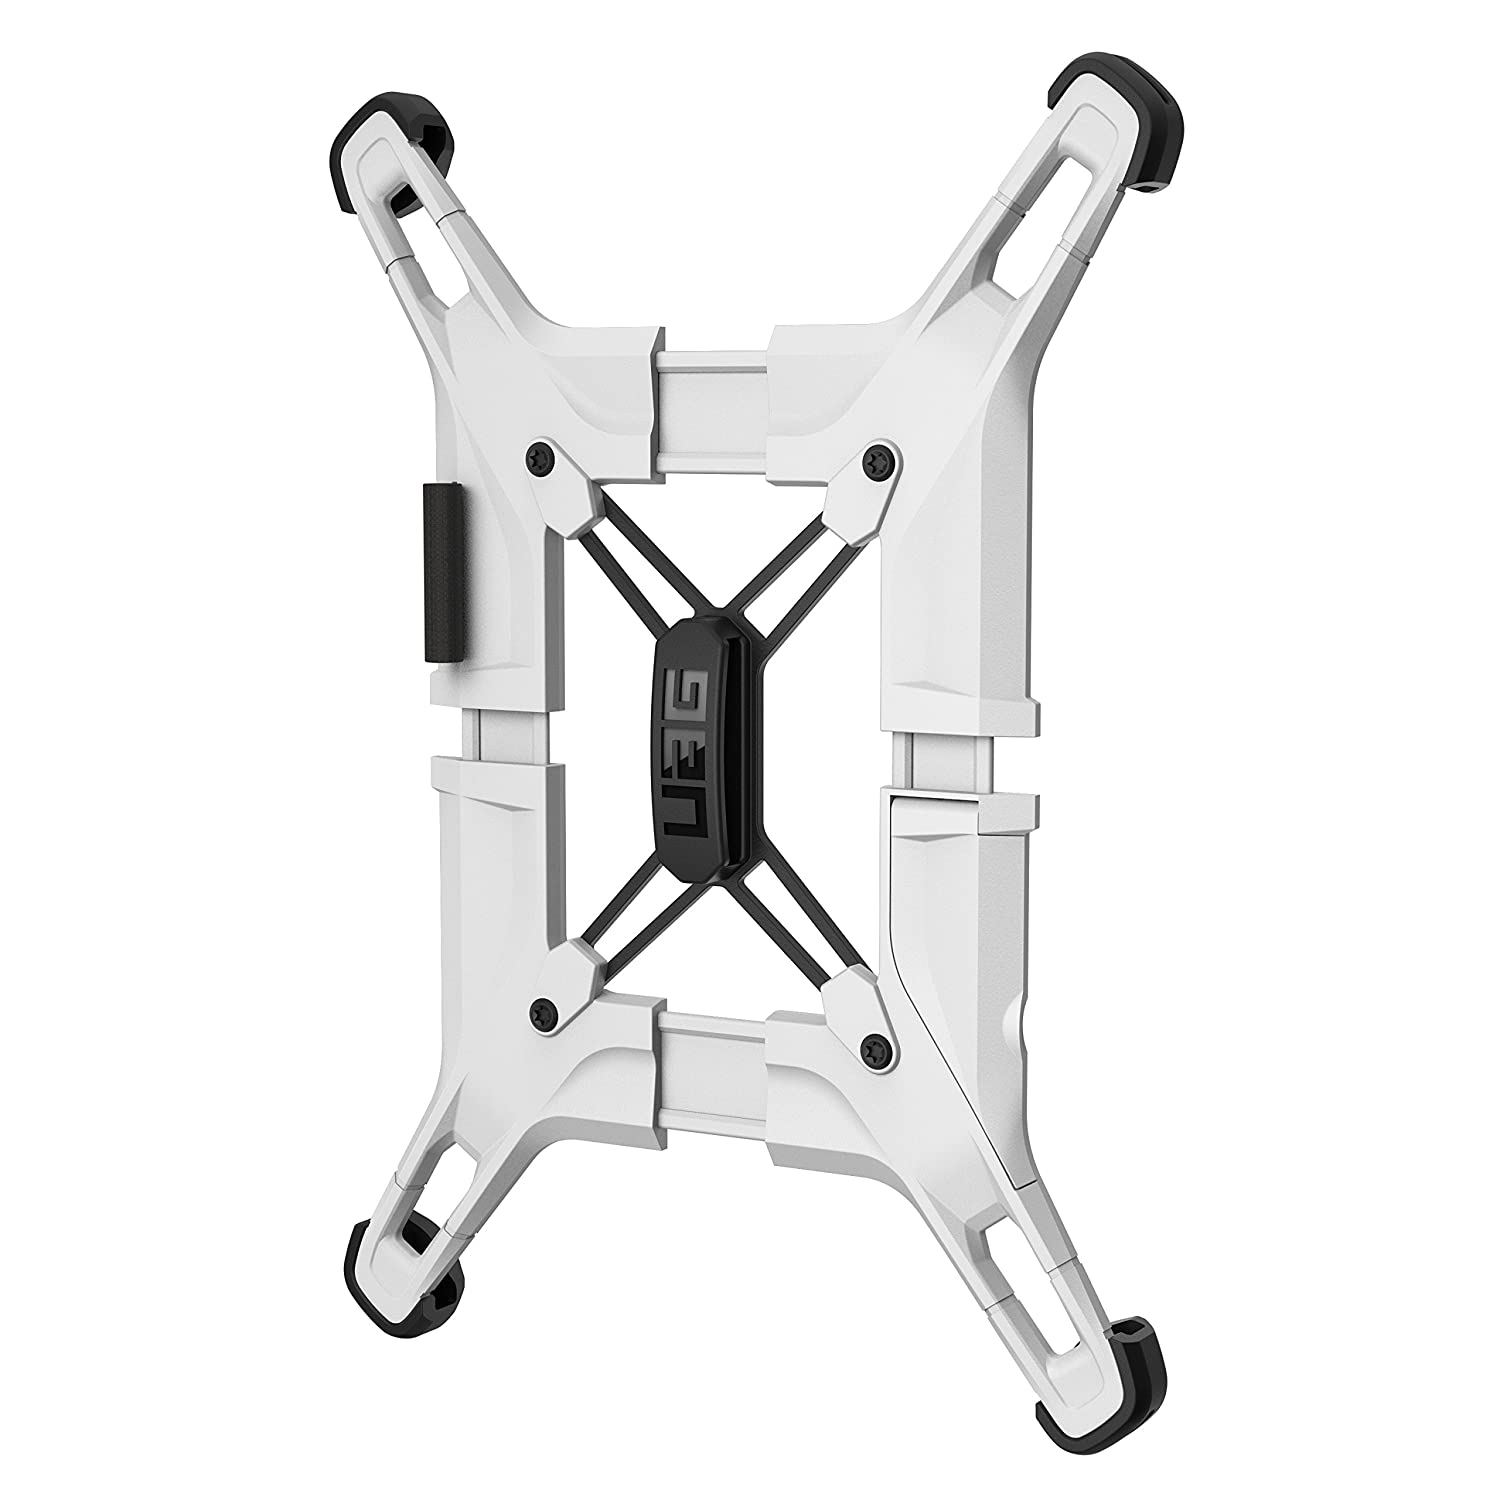 UAG Exoskeleton 10-Inch Universal Fit Android Tablet Feather-Light Rugged [White] Military Drop Tested Case